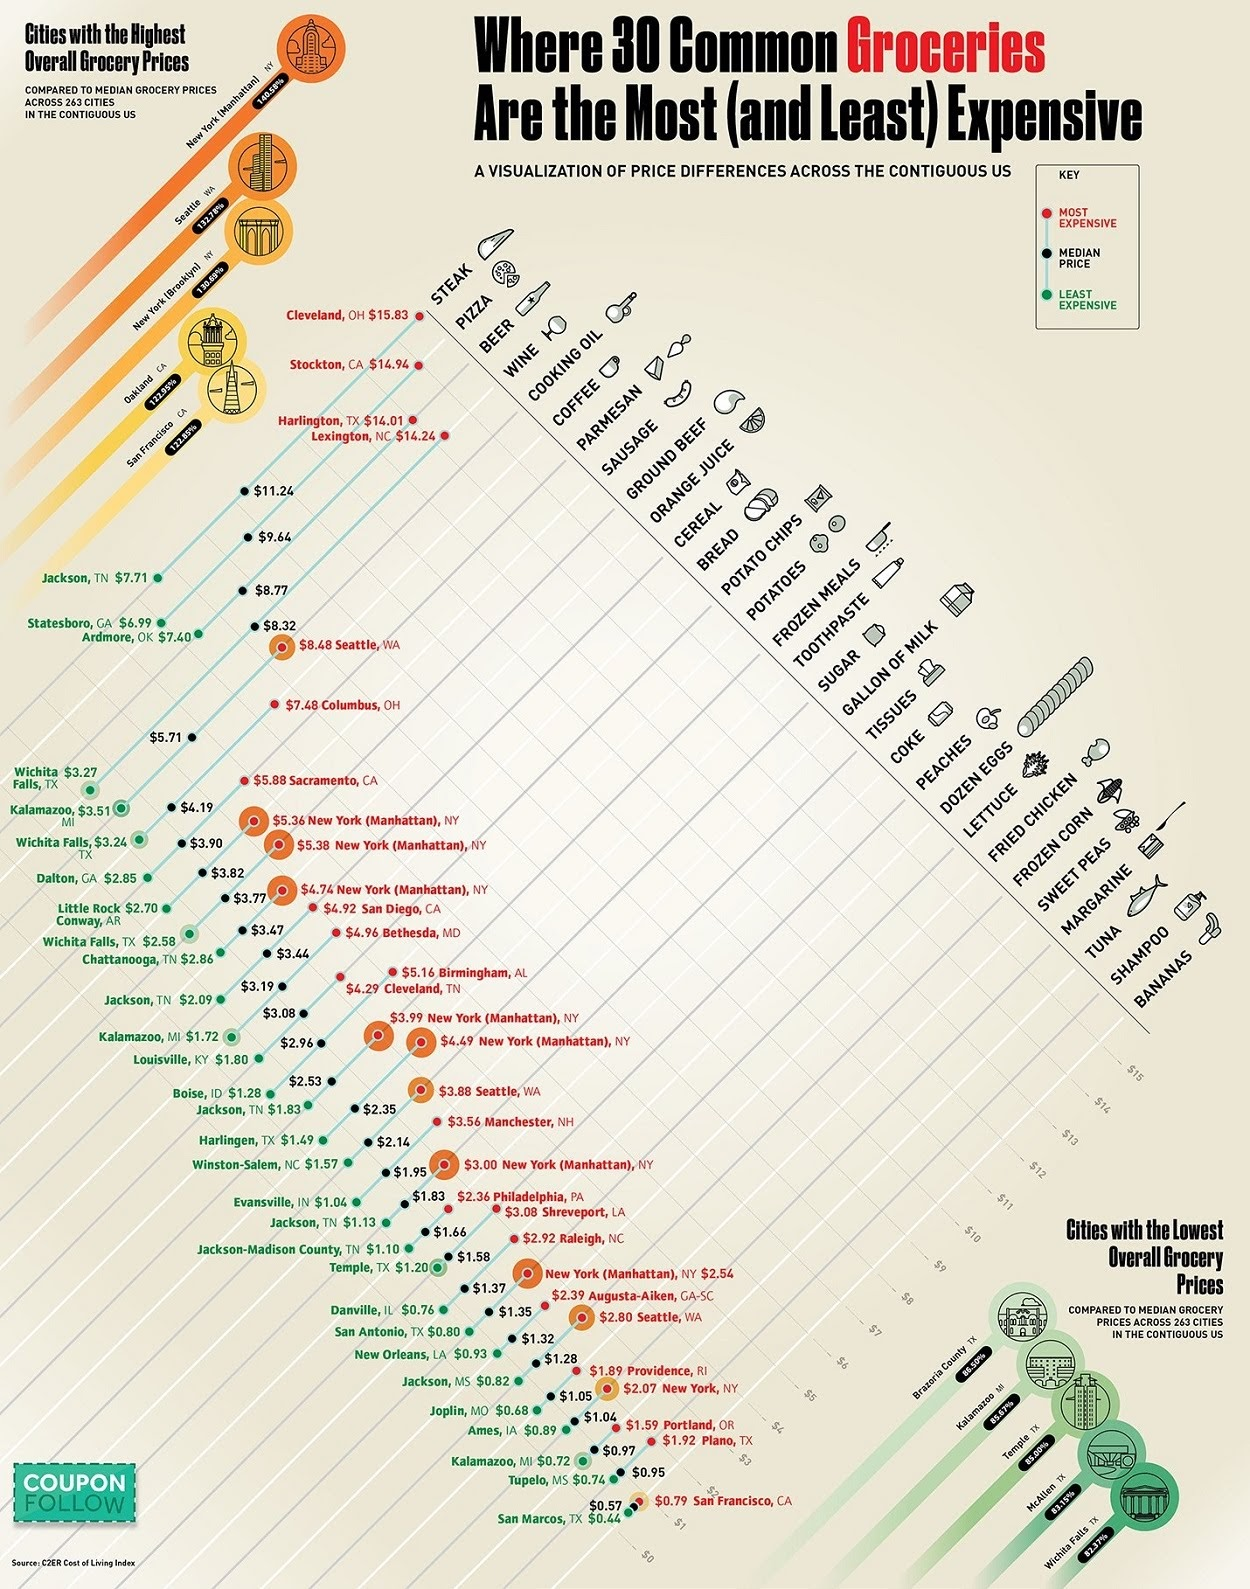 Where 30 Common Groceries Are the Most (and Least) Expensive #Infographic